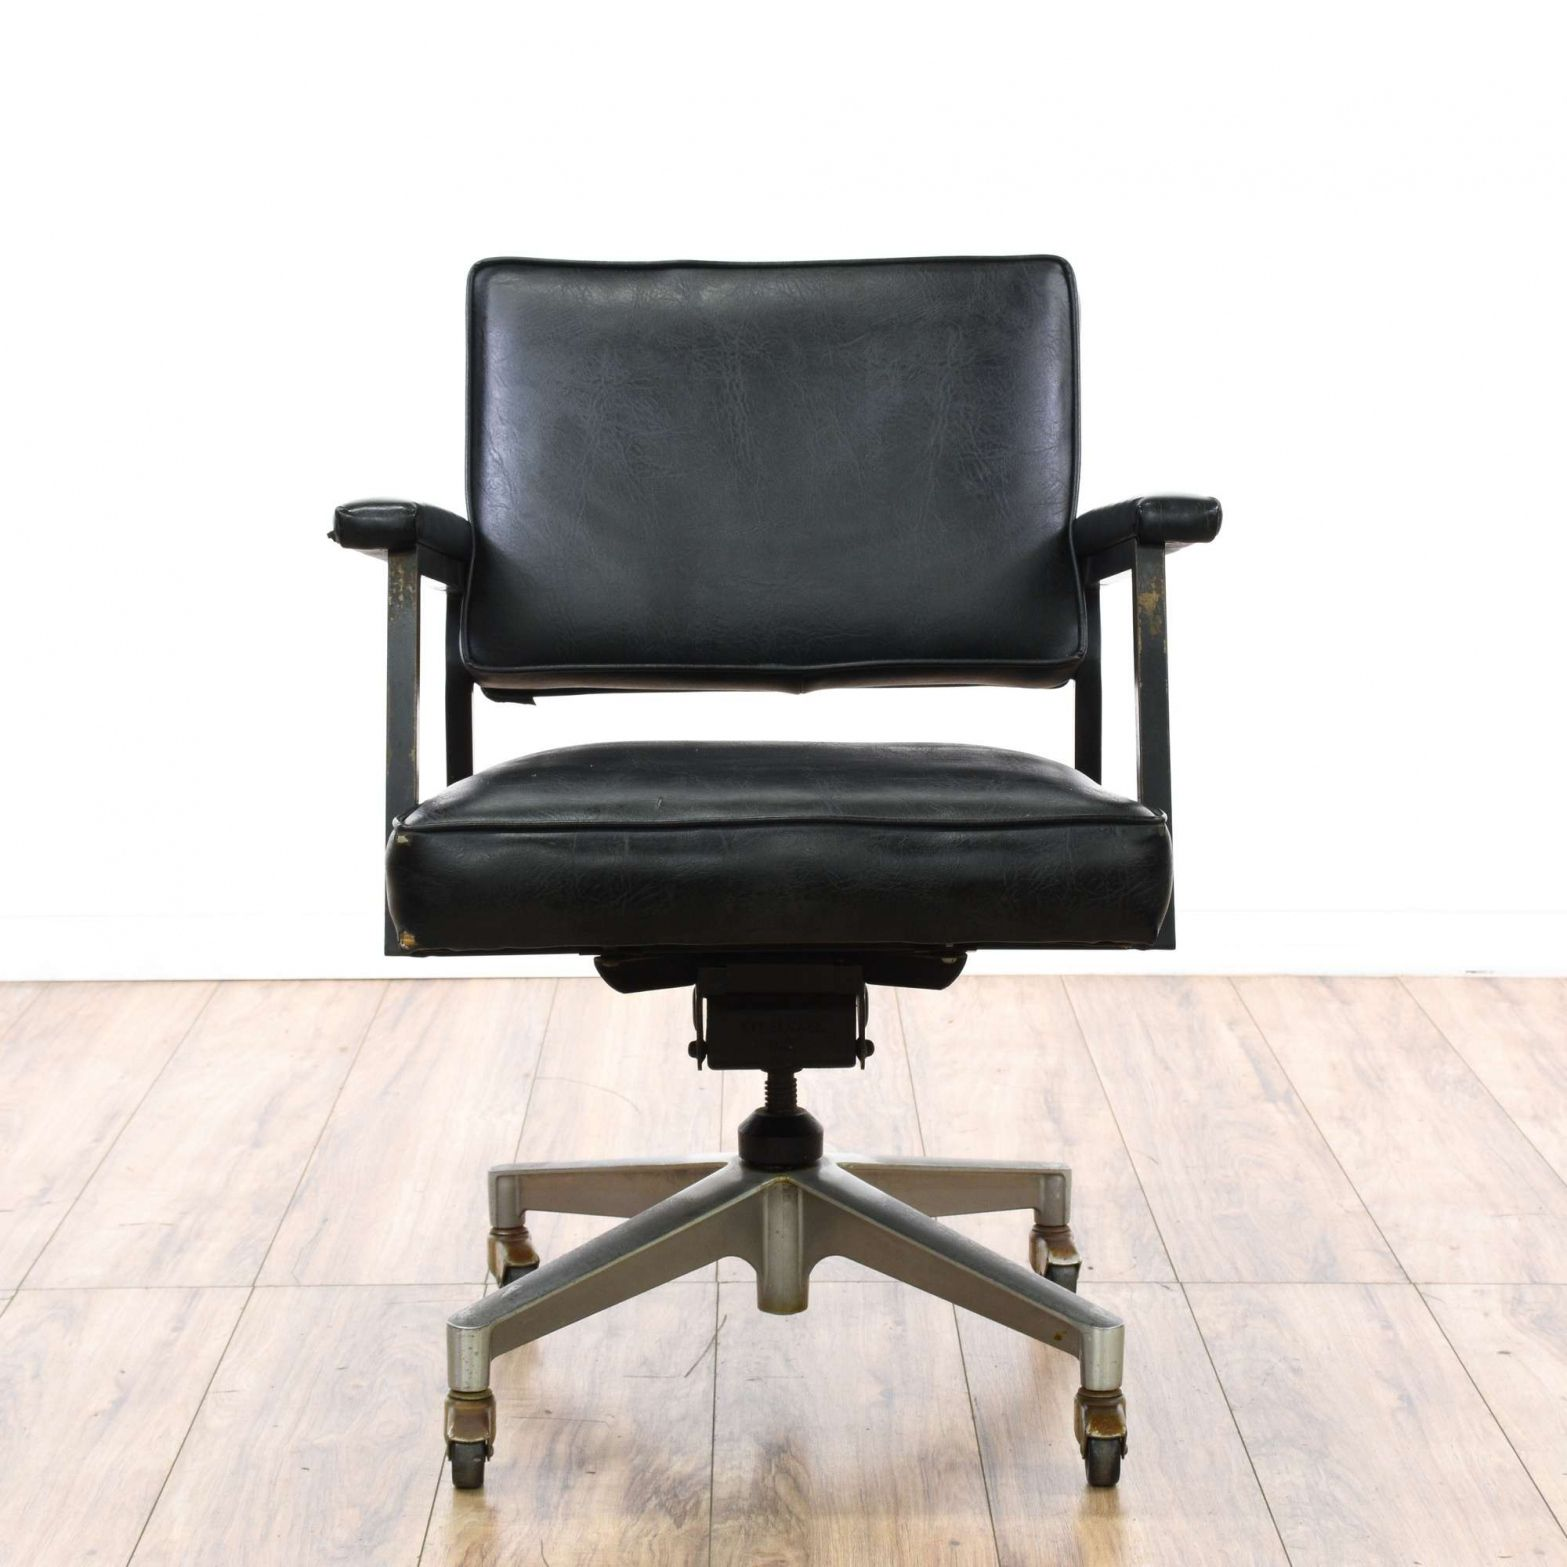 mid century modern office chair. 2019 Mid Century Modern Office Chairs - Luxury Home Furniture Check More At Http: Chair T